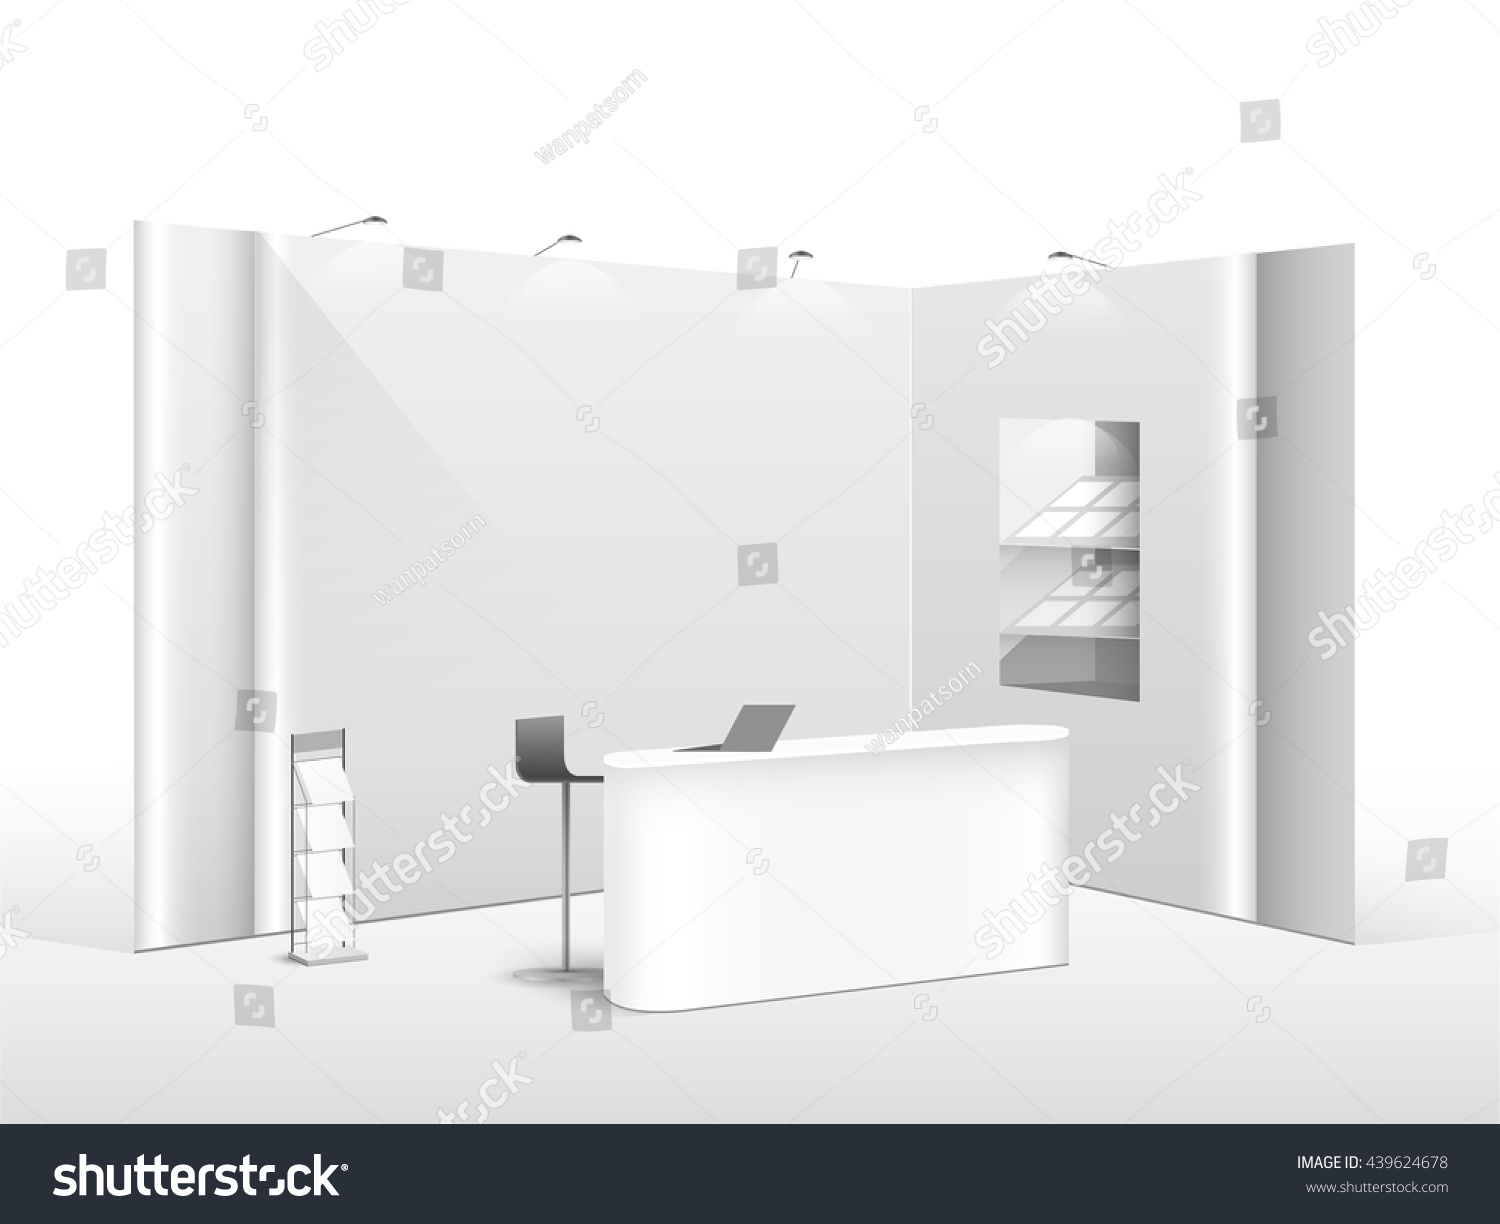 Exhibition Stand White : White creative exhibition stand design booth stock vector royalty